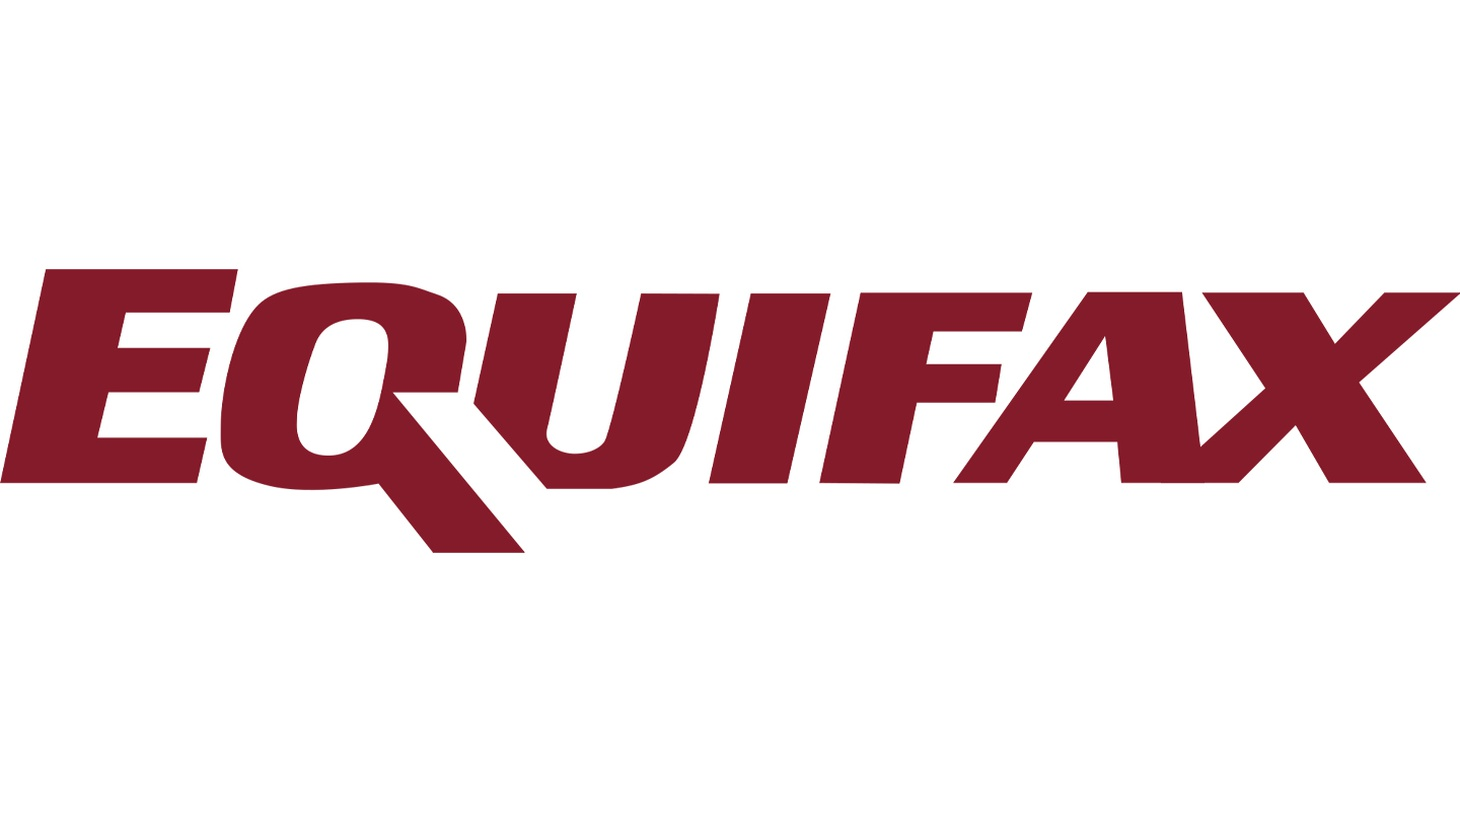 The Equifax logo.